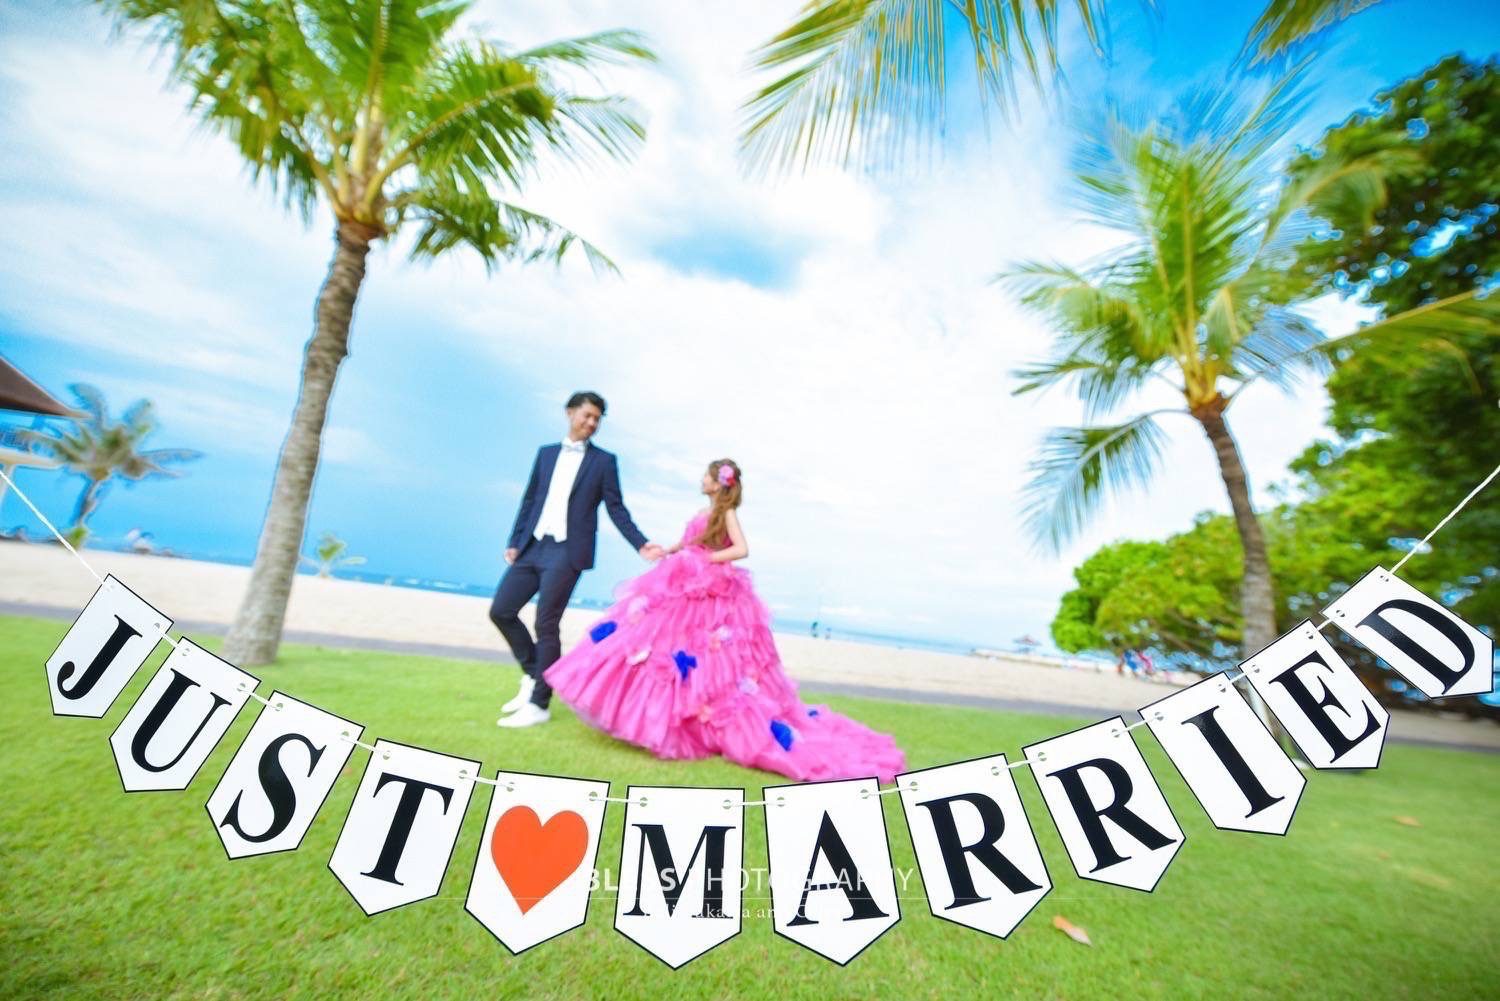 「JUST♡MARRIED」のガーランド